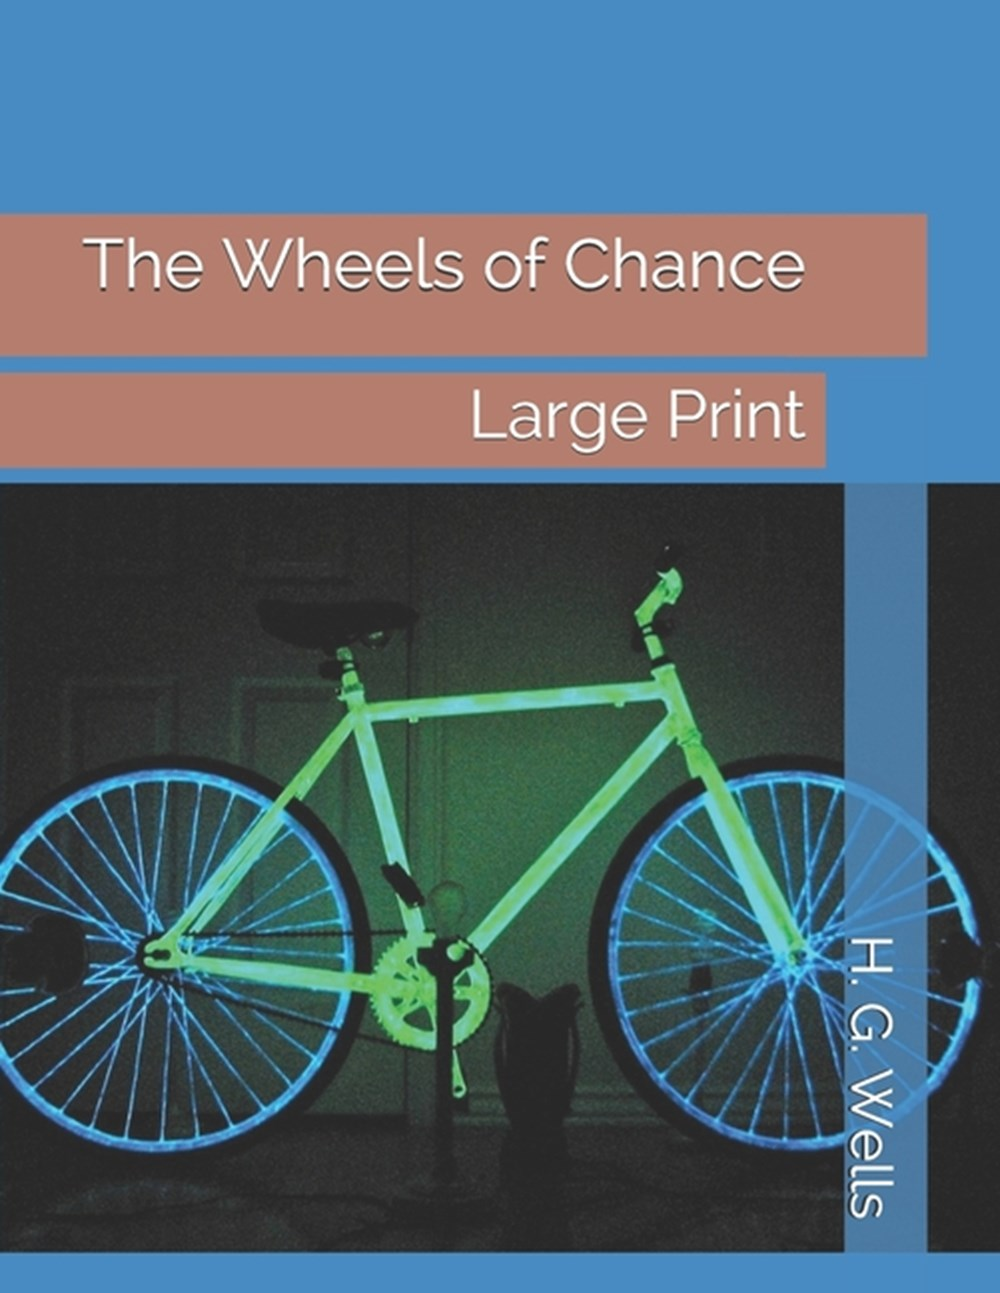 Wheels of Chance Large Print